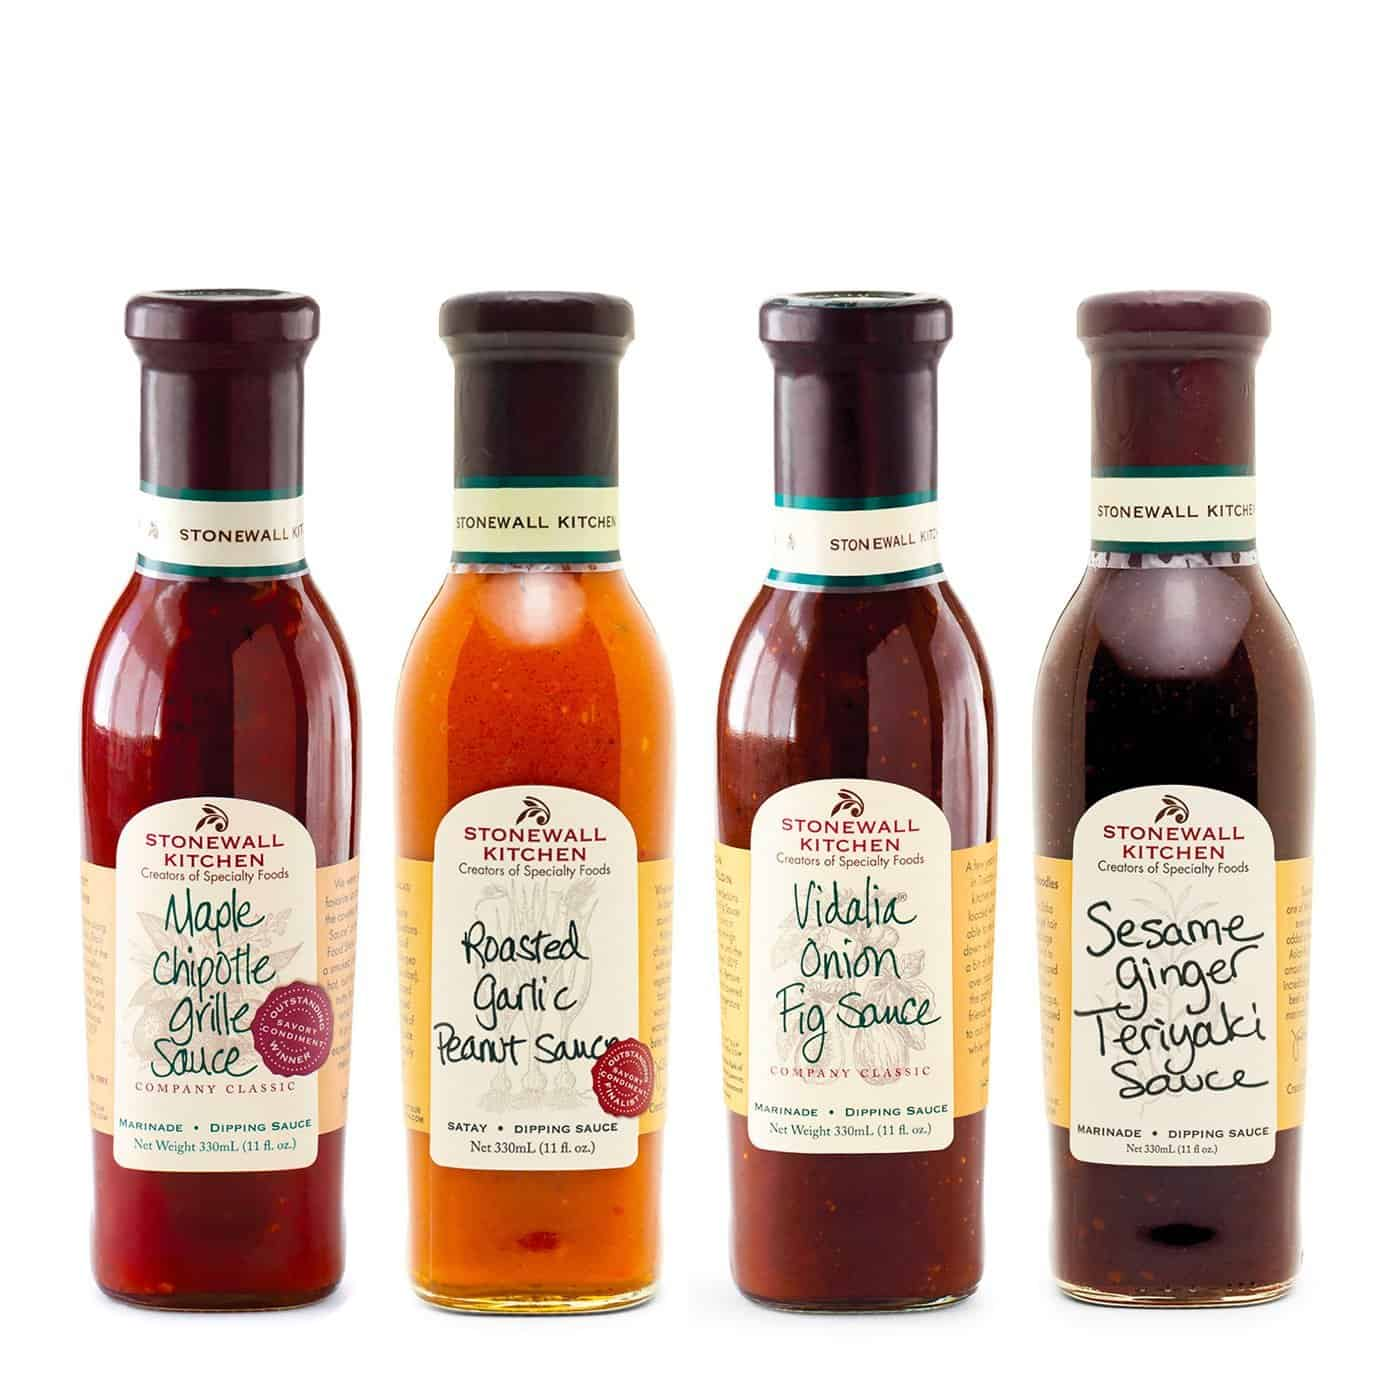 Best BBQ sauce collection- Stonewall Kitchen 4 Piece Classic Grille